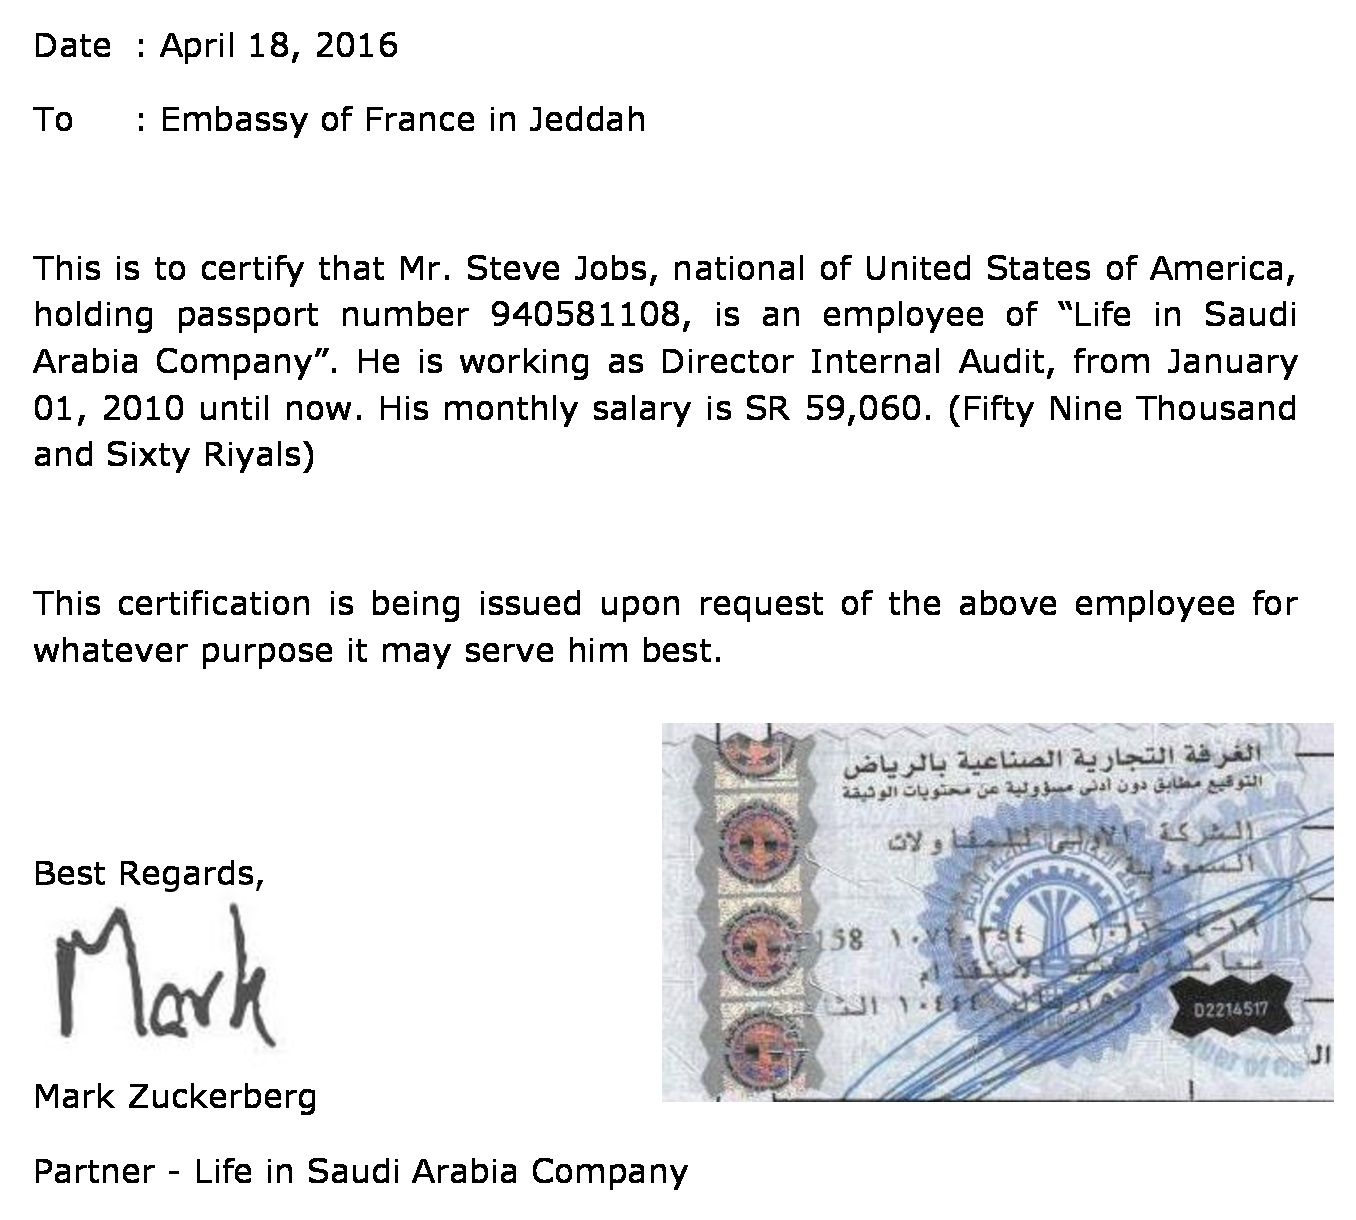 sample introduction letter for visa processing in saudi arabia one of the main requirements to apply for visa of different countries is to get introduction letter from your employer